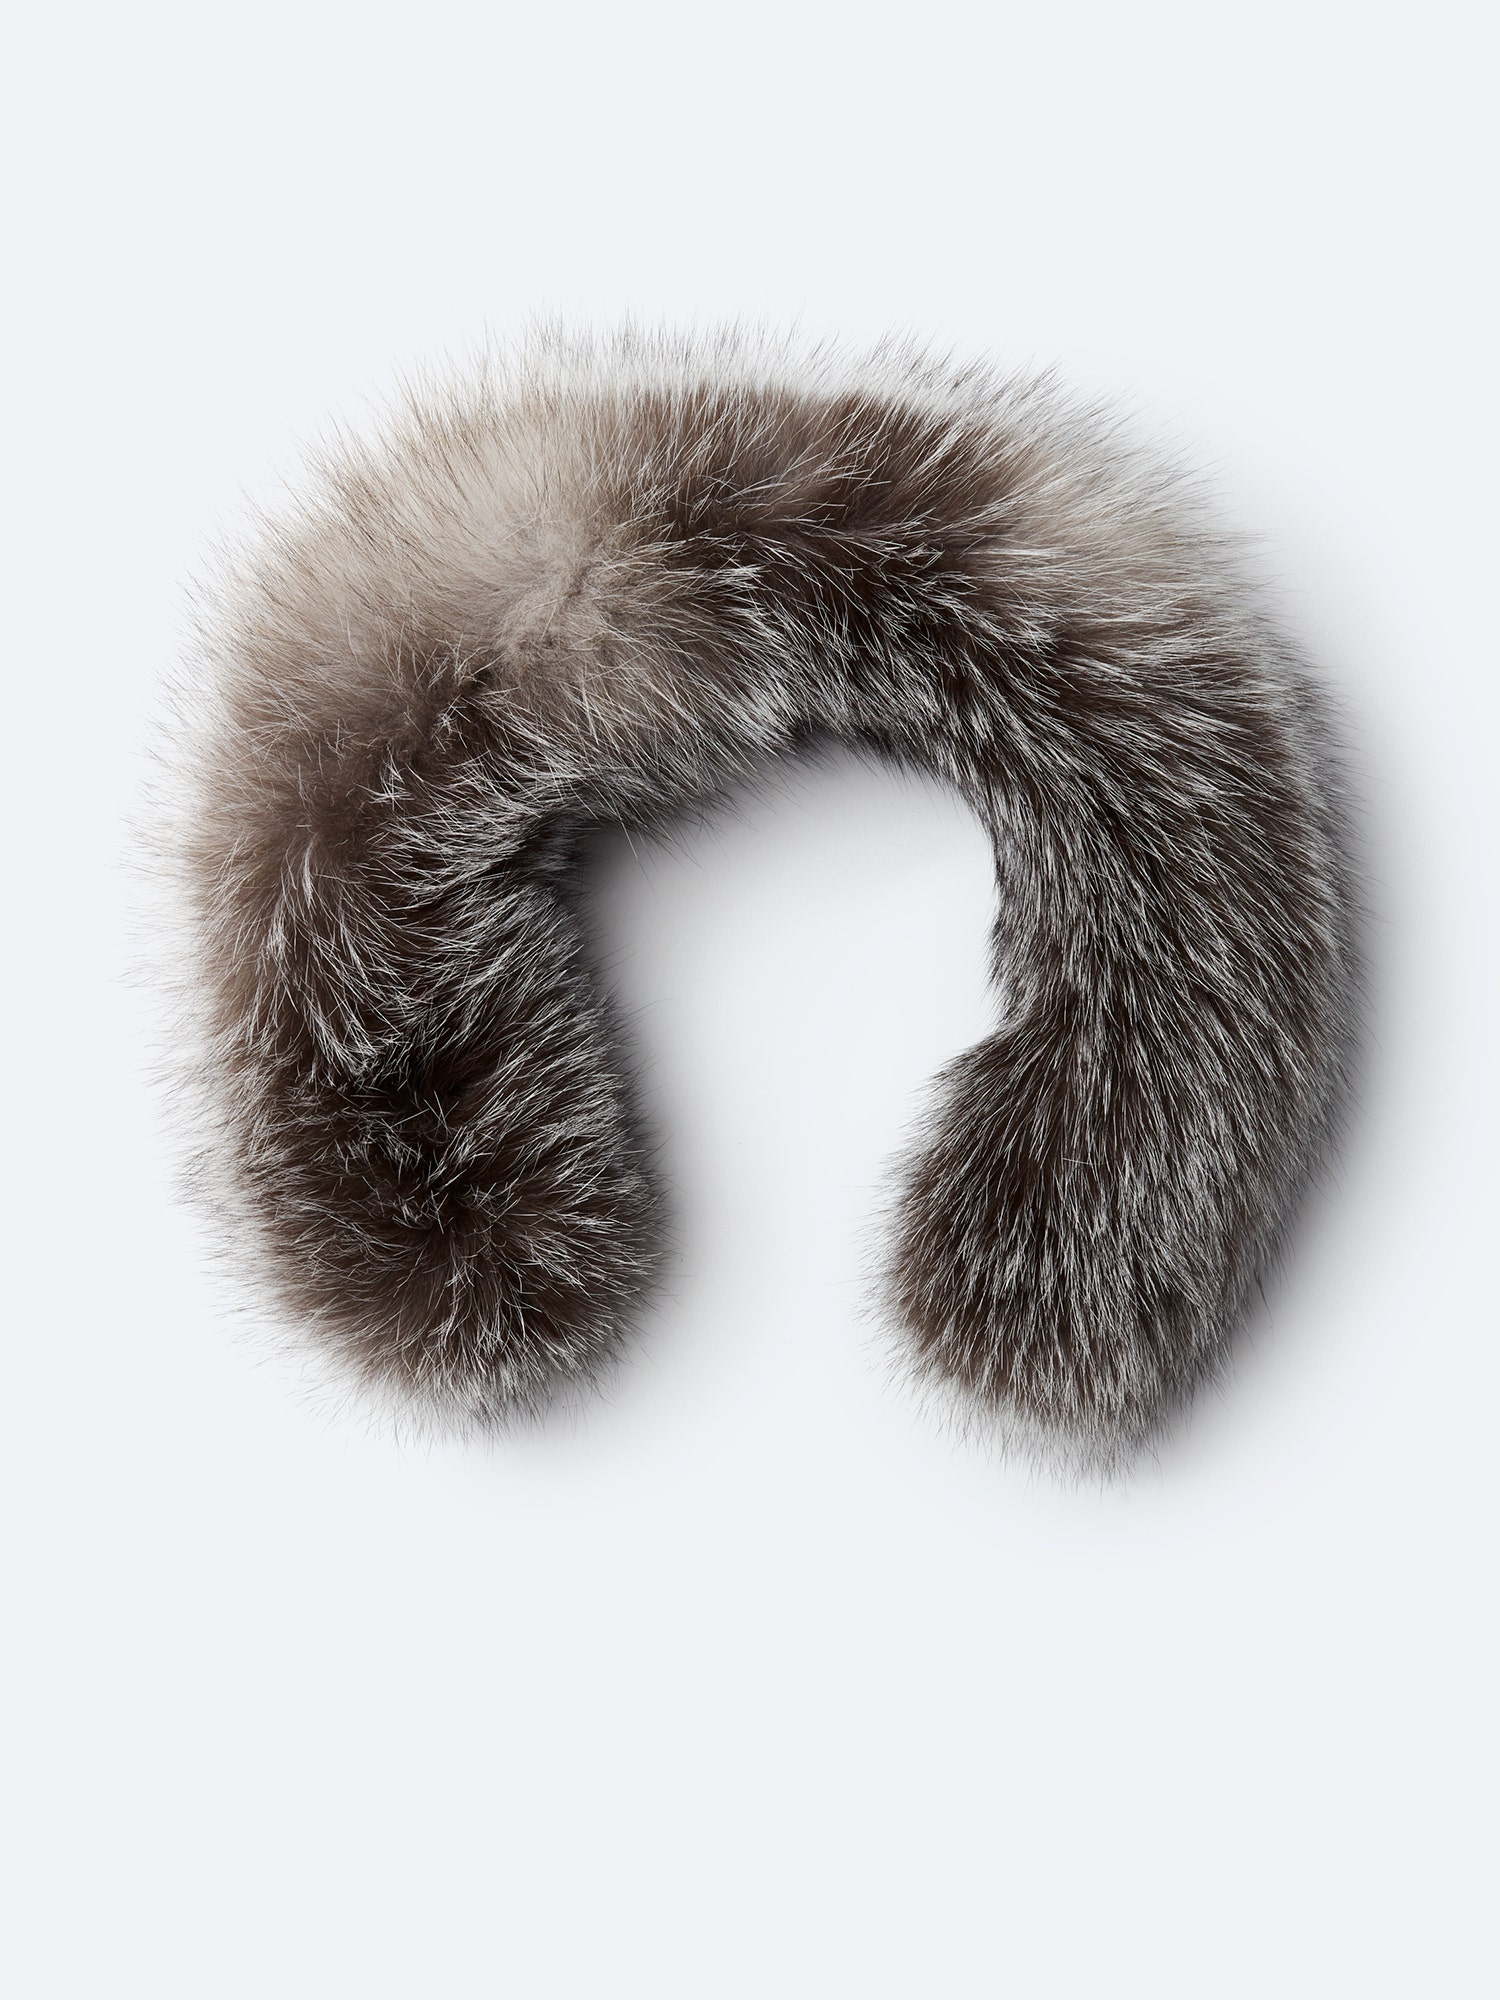 Fur Graphite 23 inches